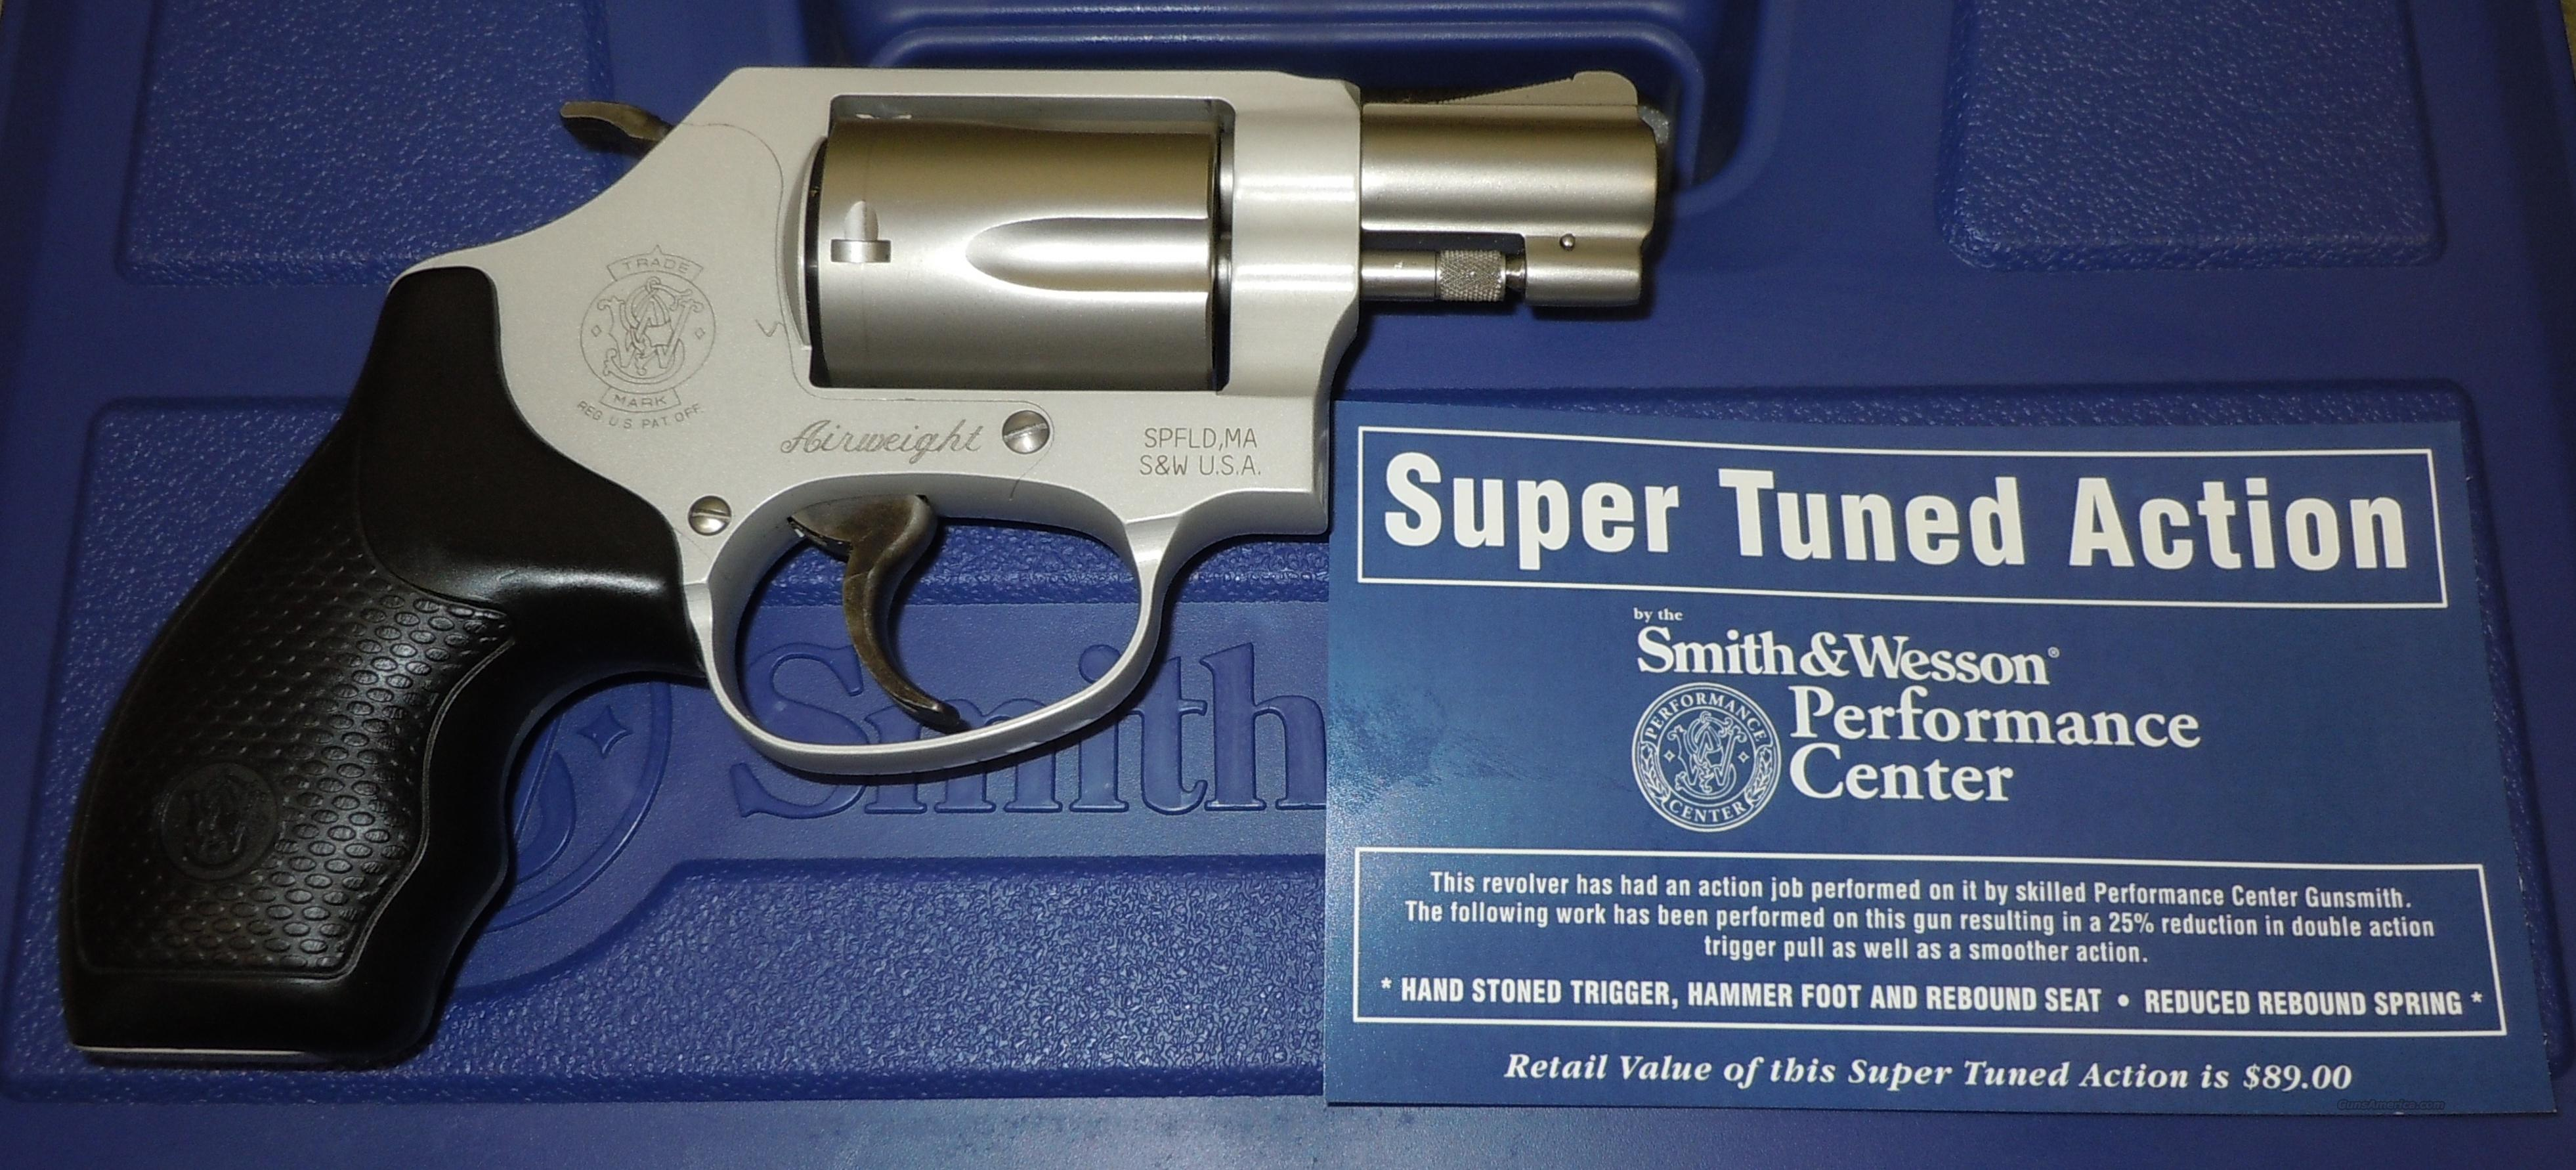 SMITH & WESSON 637 CHEIF'S SPECIAL AIRWEIGHT 38 SPECIAL 5 SHOT REVOLVER (178024) *SUPER TUNED*  Guns > Pistols > Smith & Wesson Revolvers > Pocket Pistols